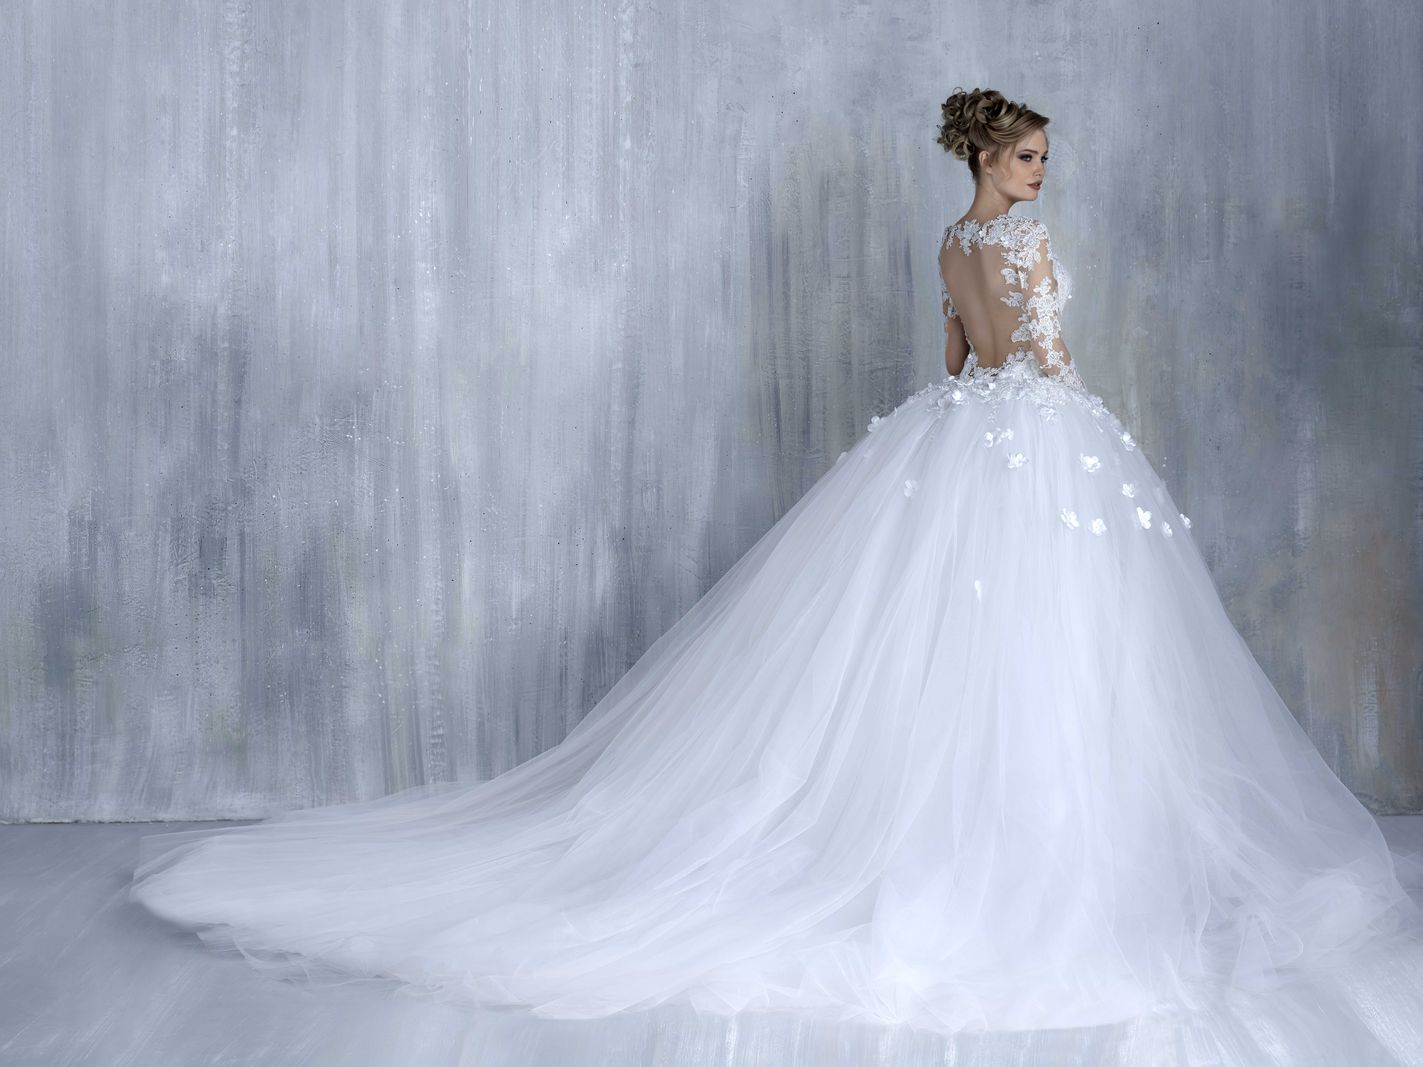 Evening Dresses Wedding Our Videos Contact